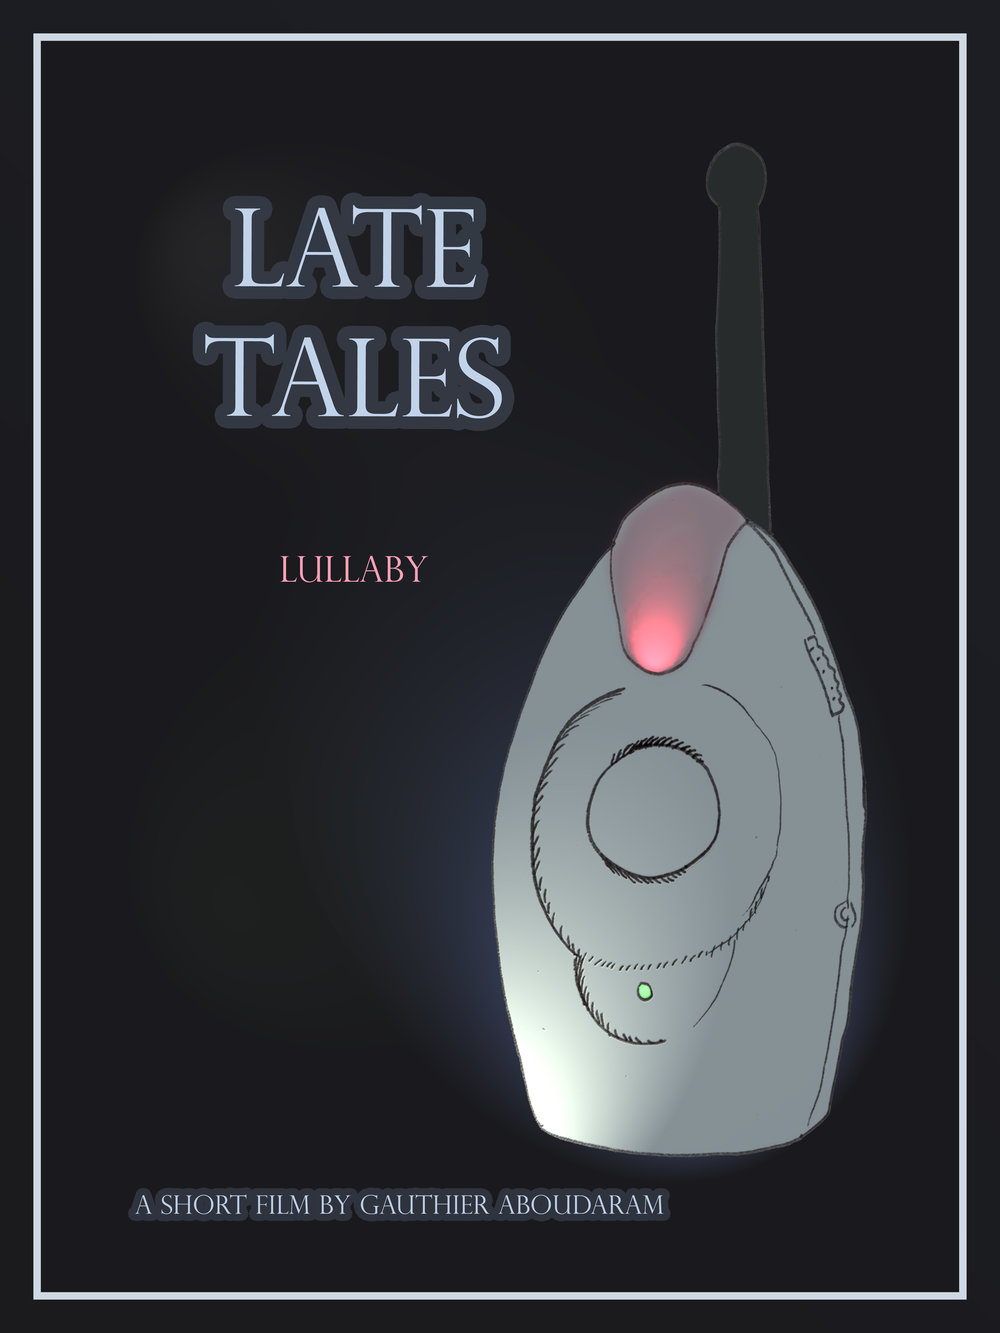 Late Tales Poster 2/4